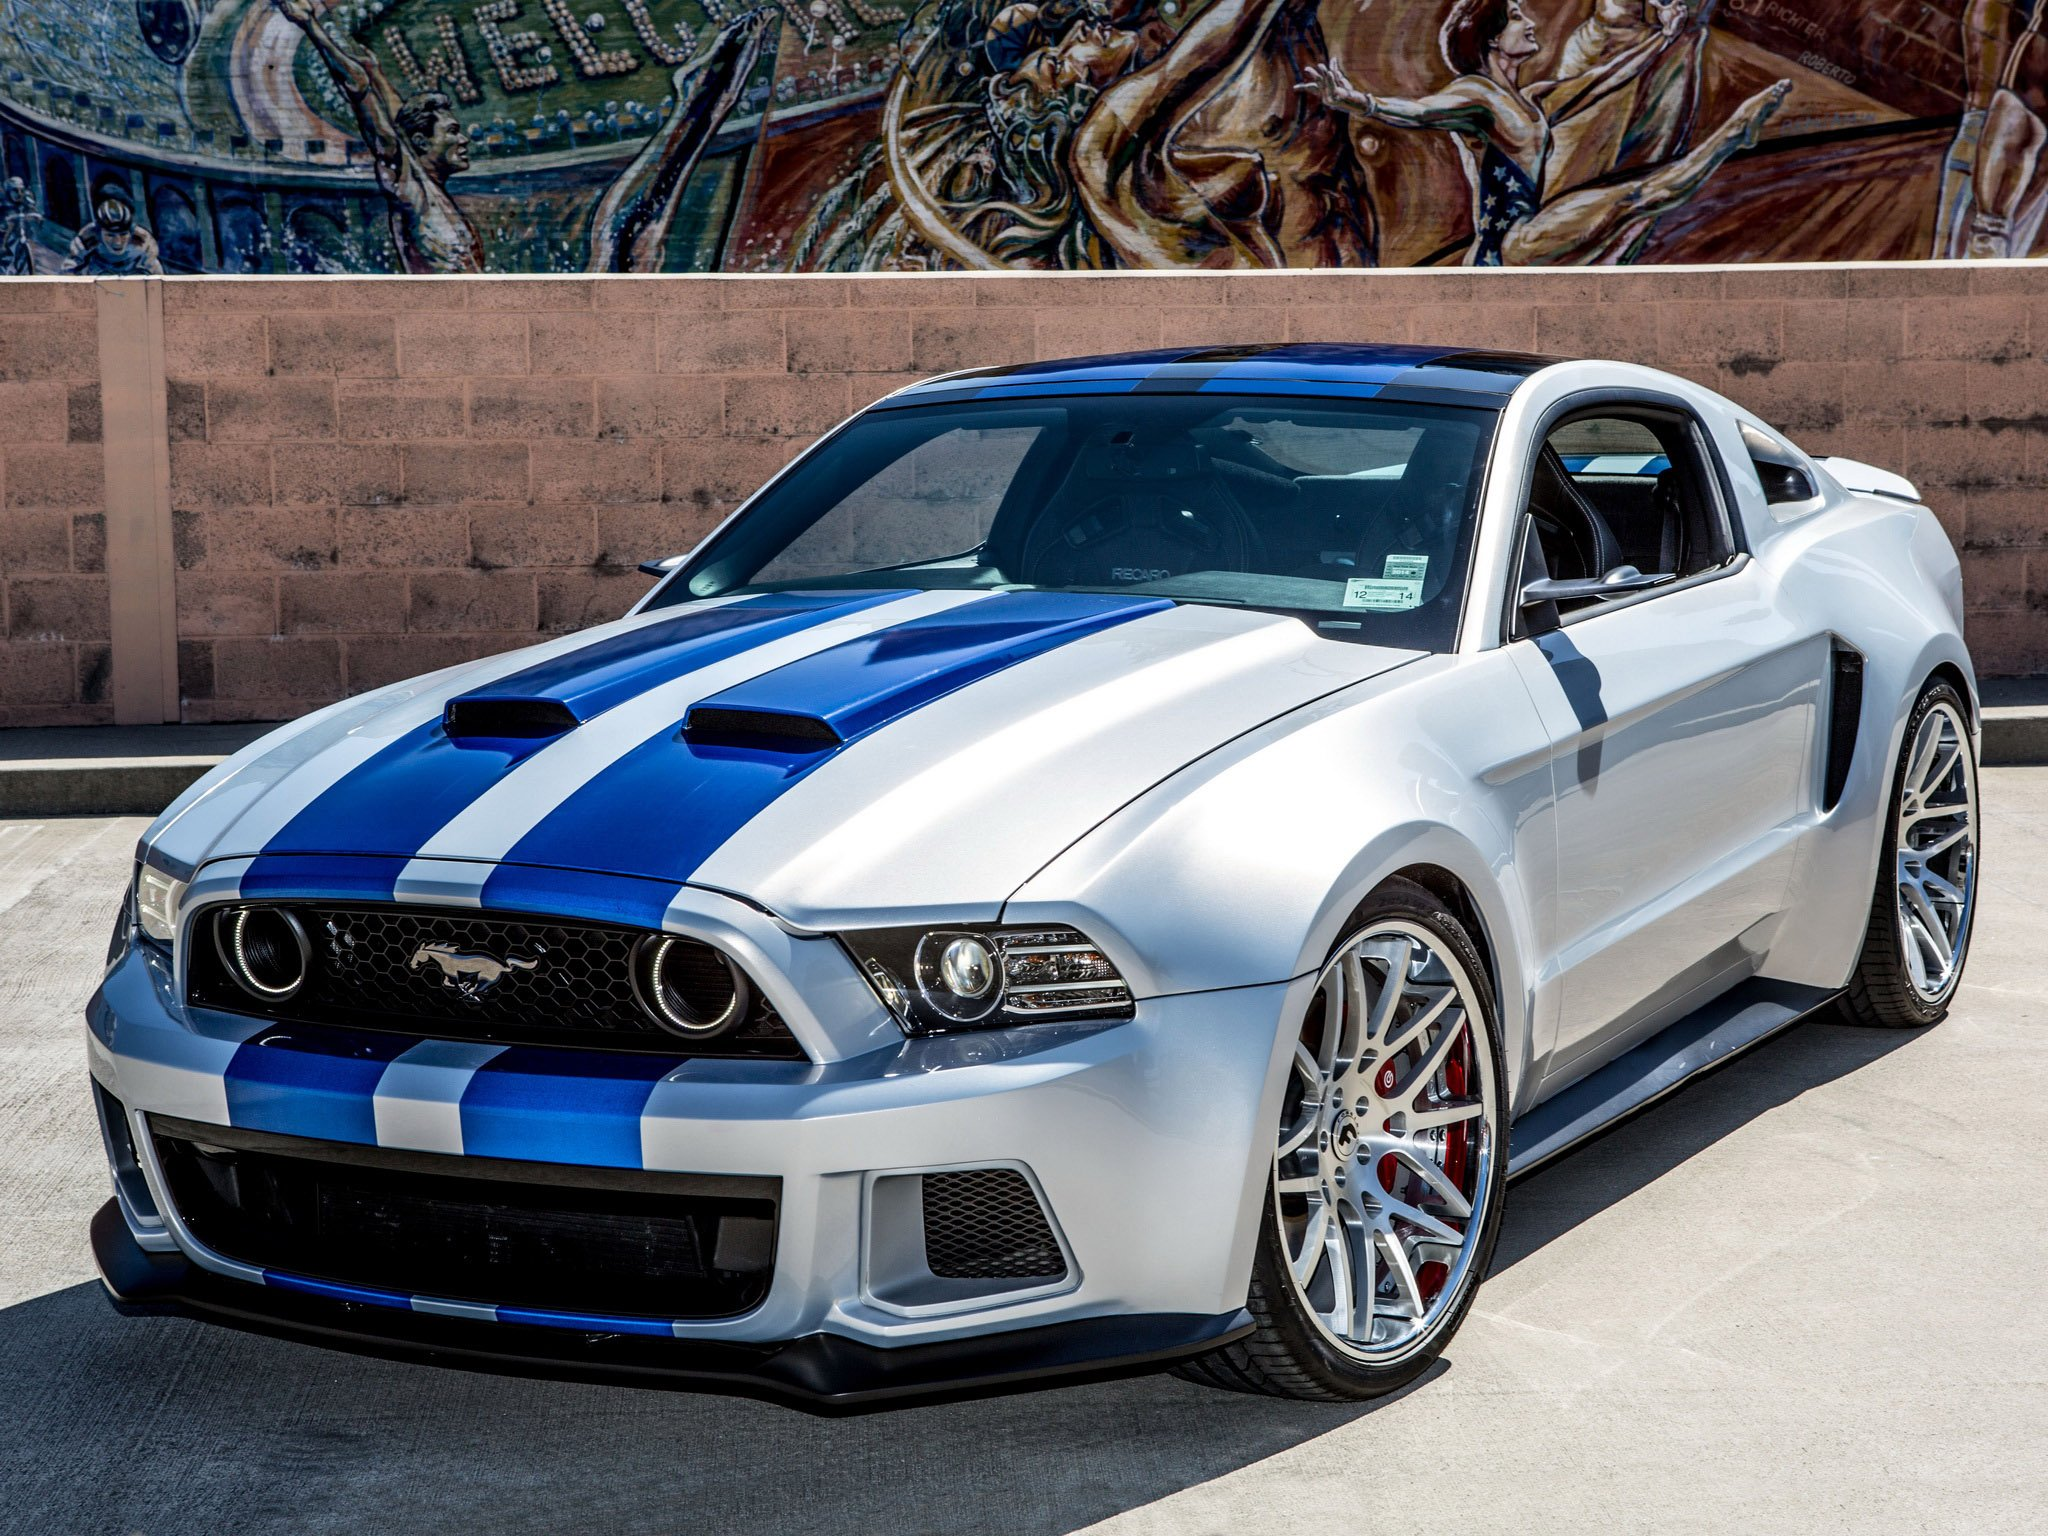 2014 used ford mustang hd pictures & 2014 Used Ford Mustang - Car Autos Gallery markmcfarlin.com